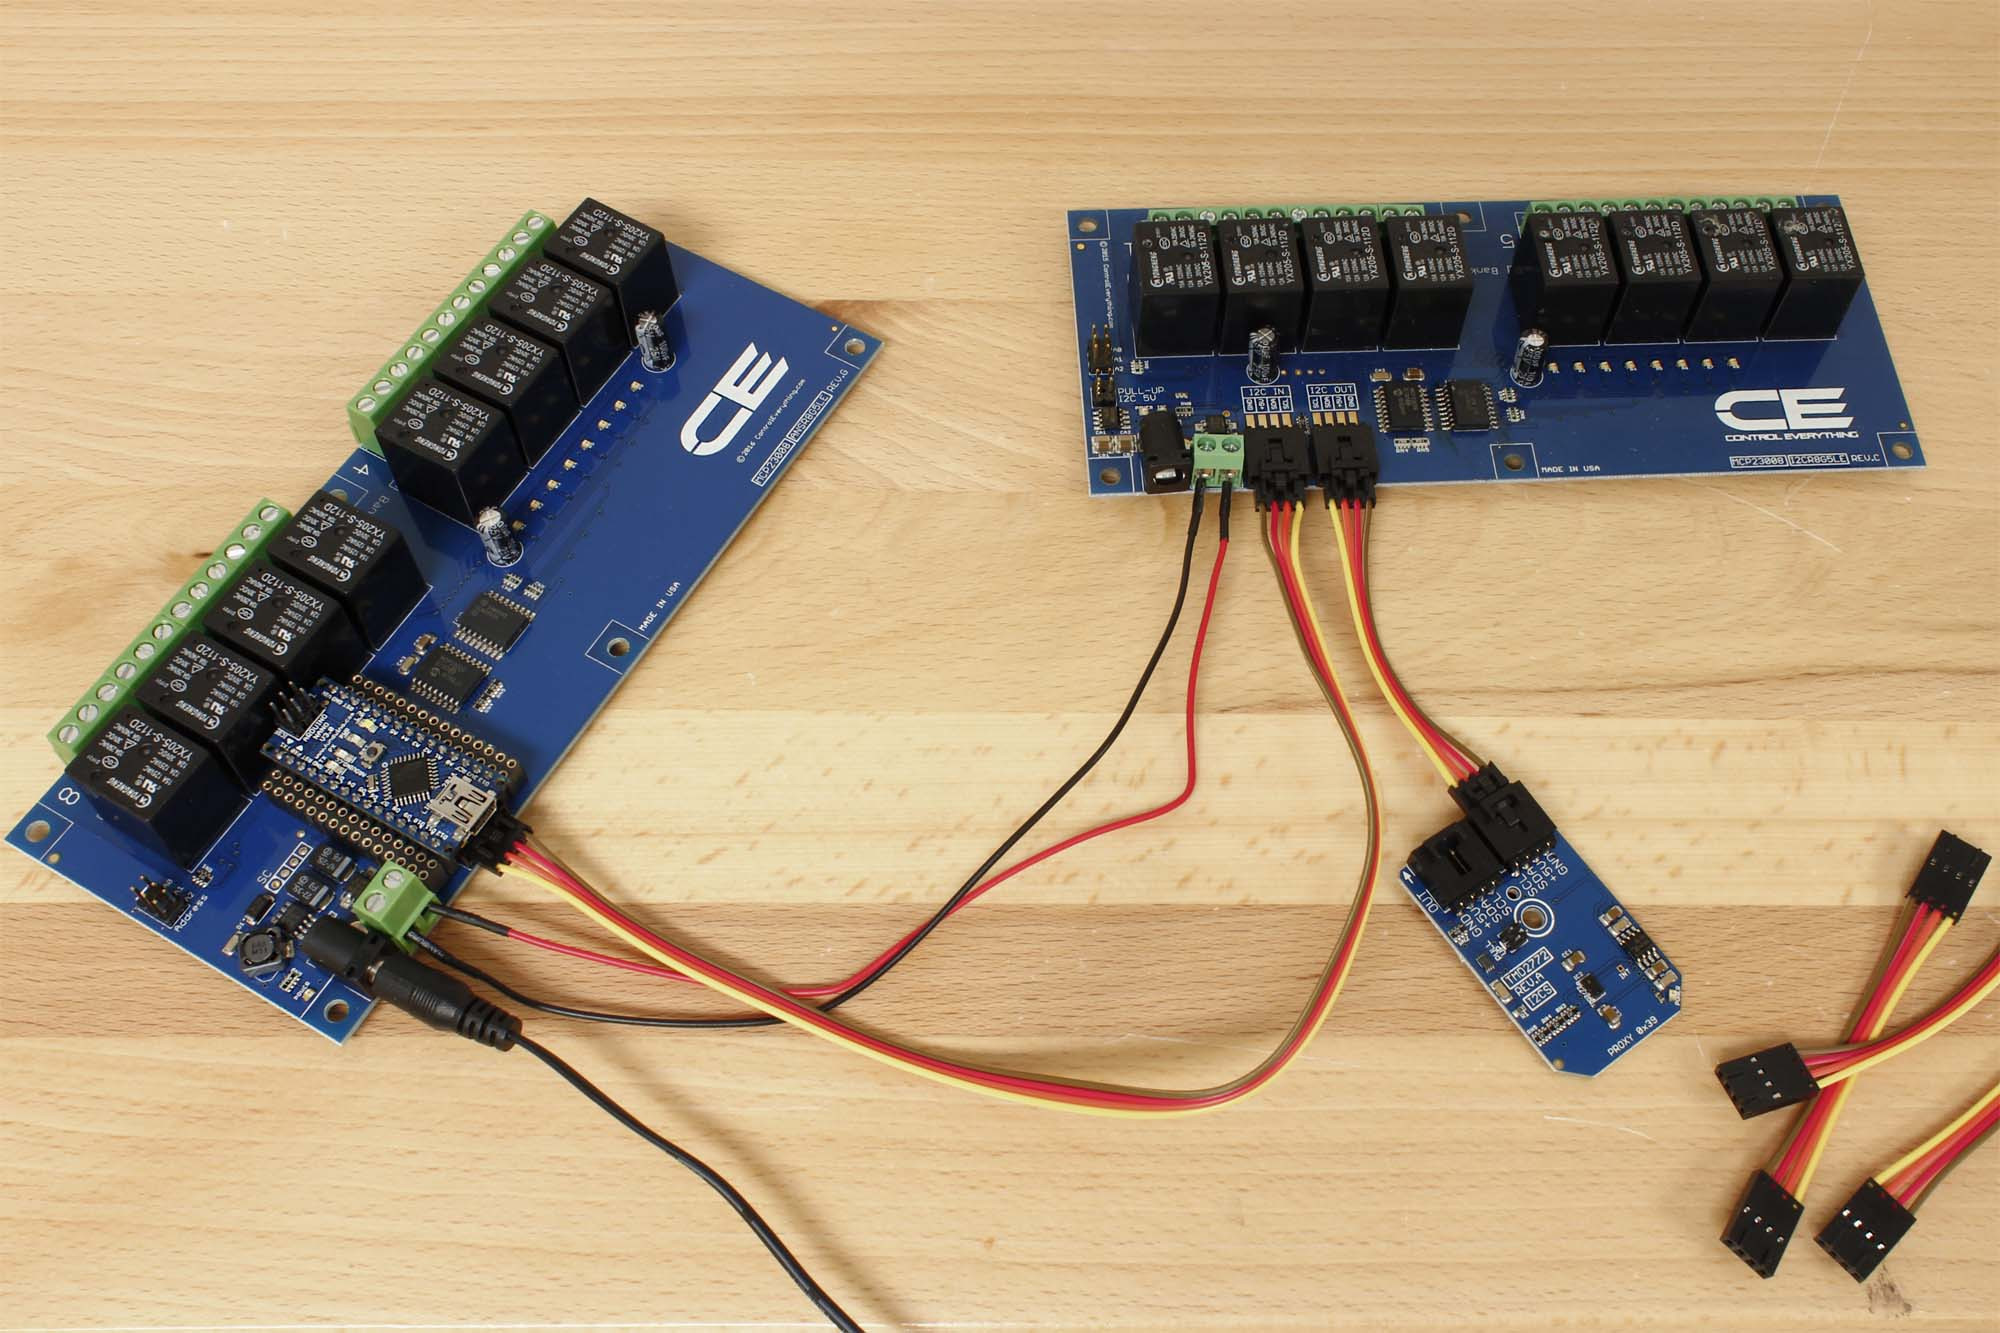 8 Channel General Purpose Spdt Relay Controller With I2c Interface Electromagnetic Arduino Nano Shield